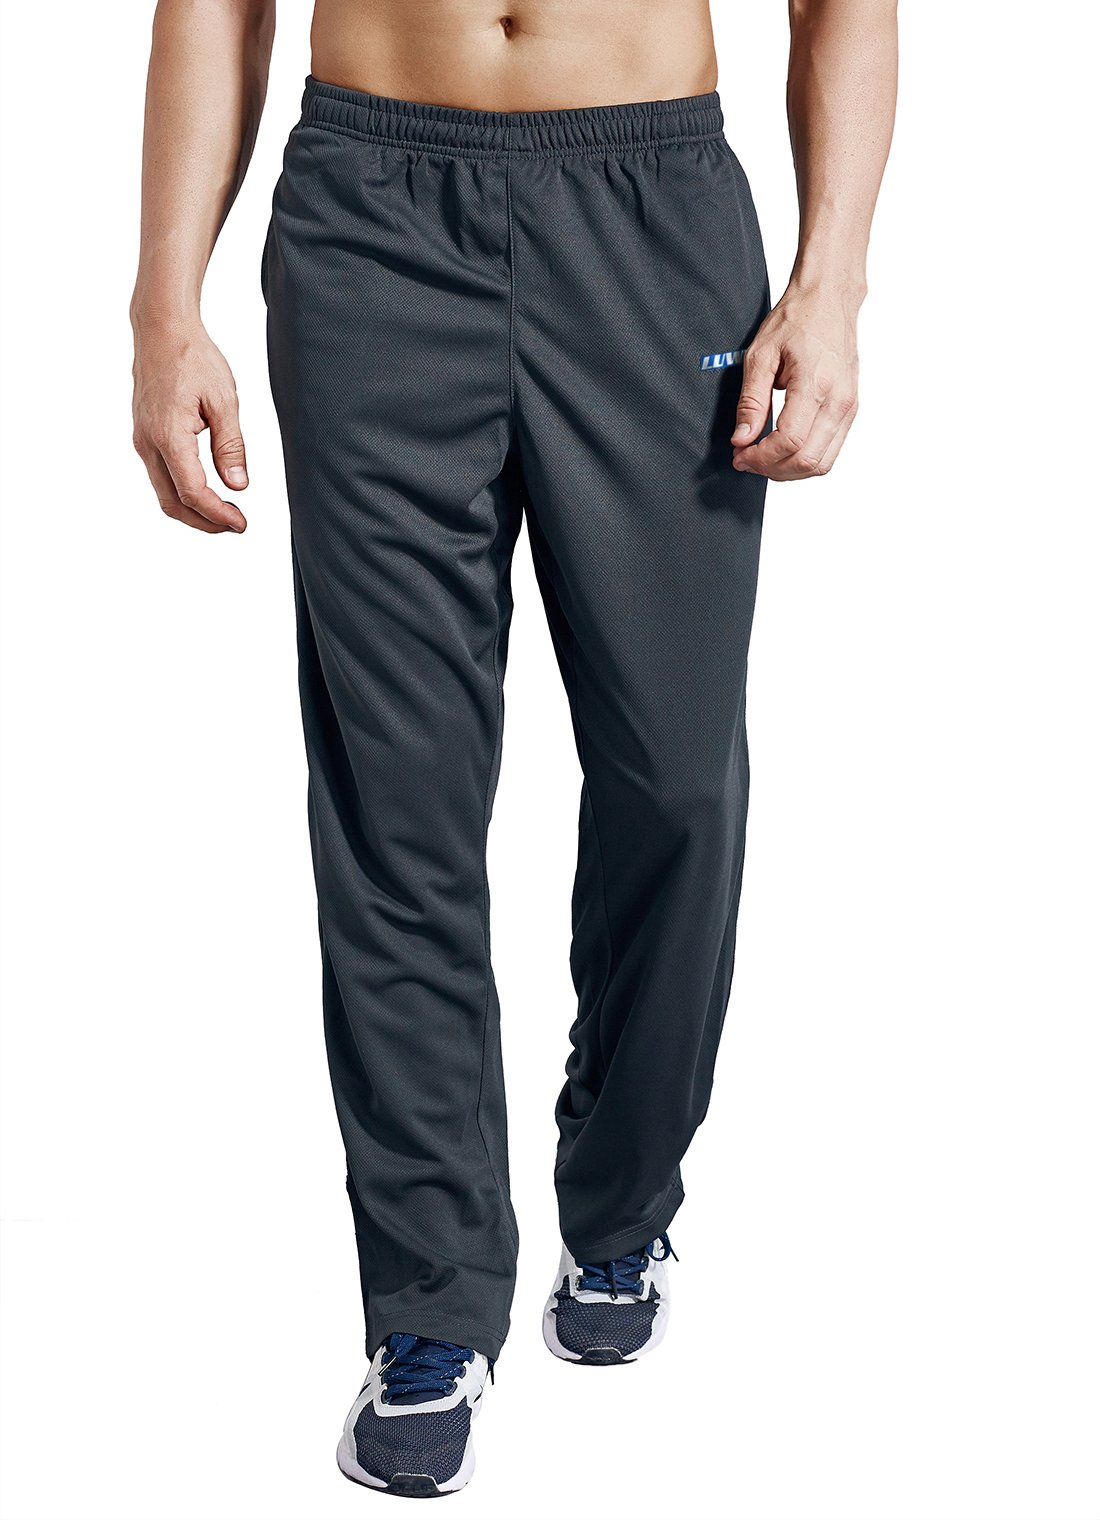 LUWELL PRO Men's Sweatpants with Pockets Open Bottom Athletic Pants for Jogging, Workout, Gym, Running, Training(0317Gray,S)